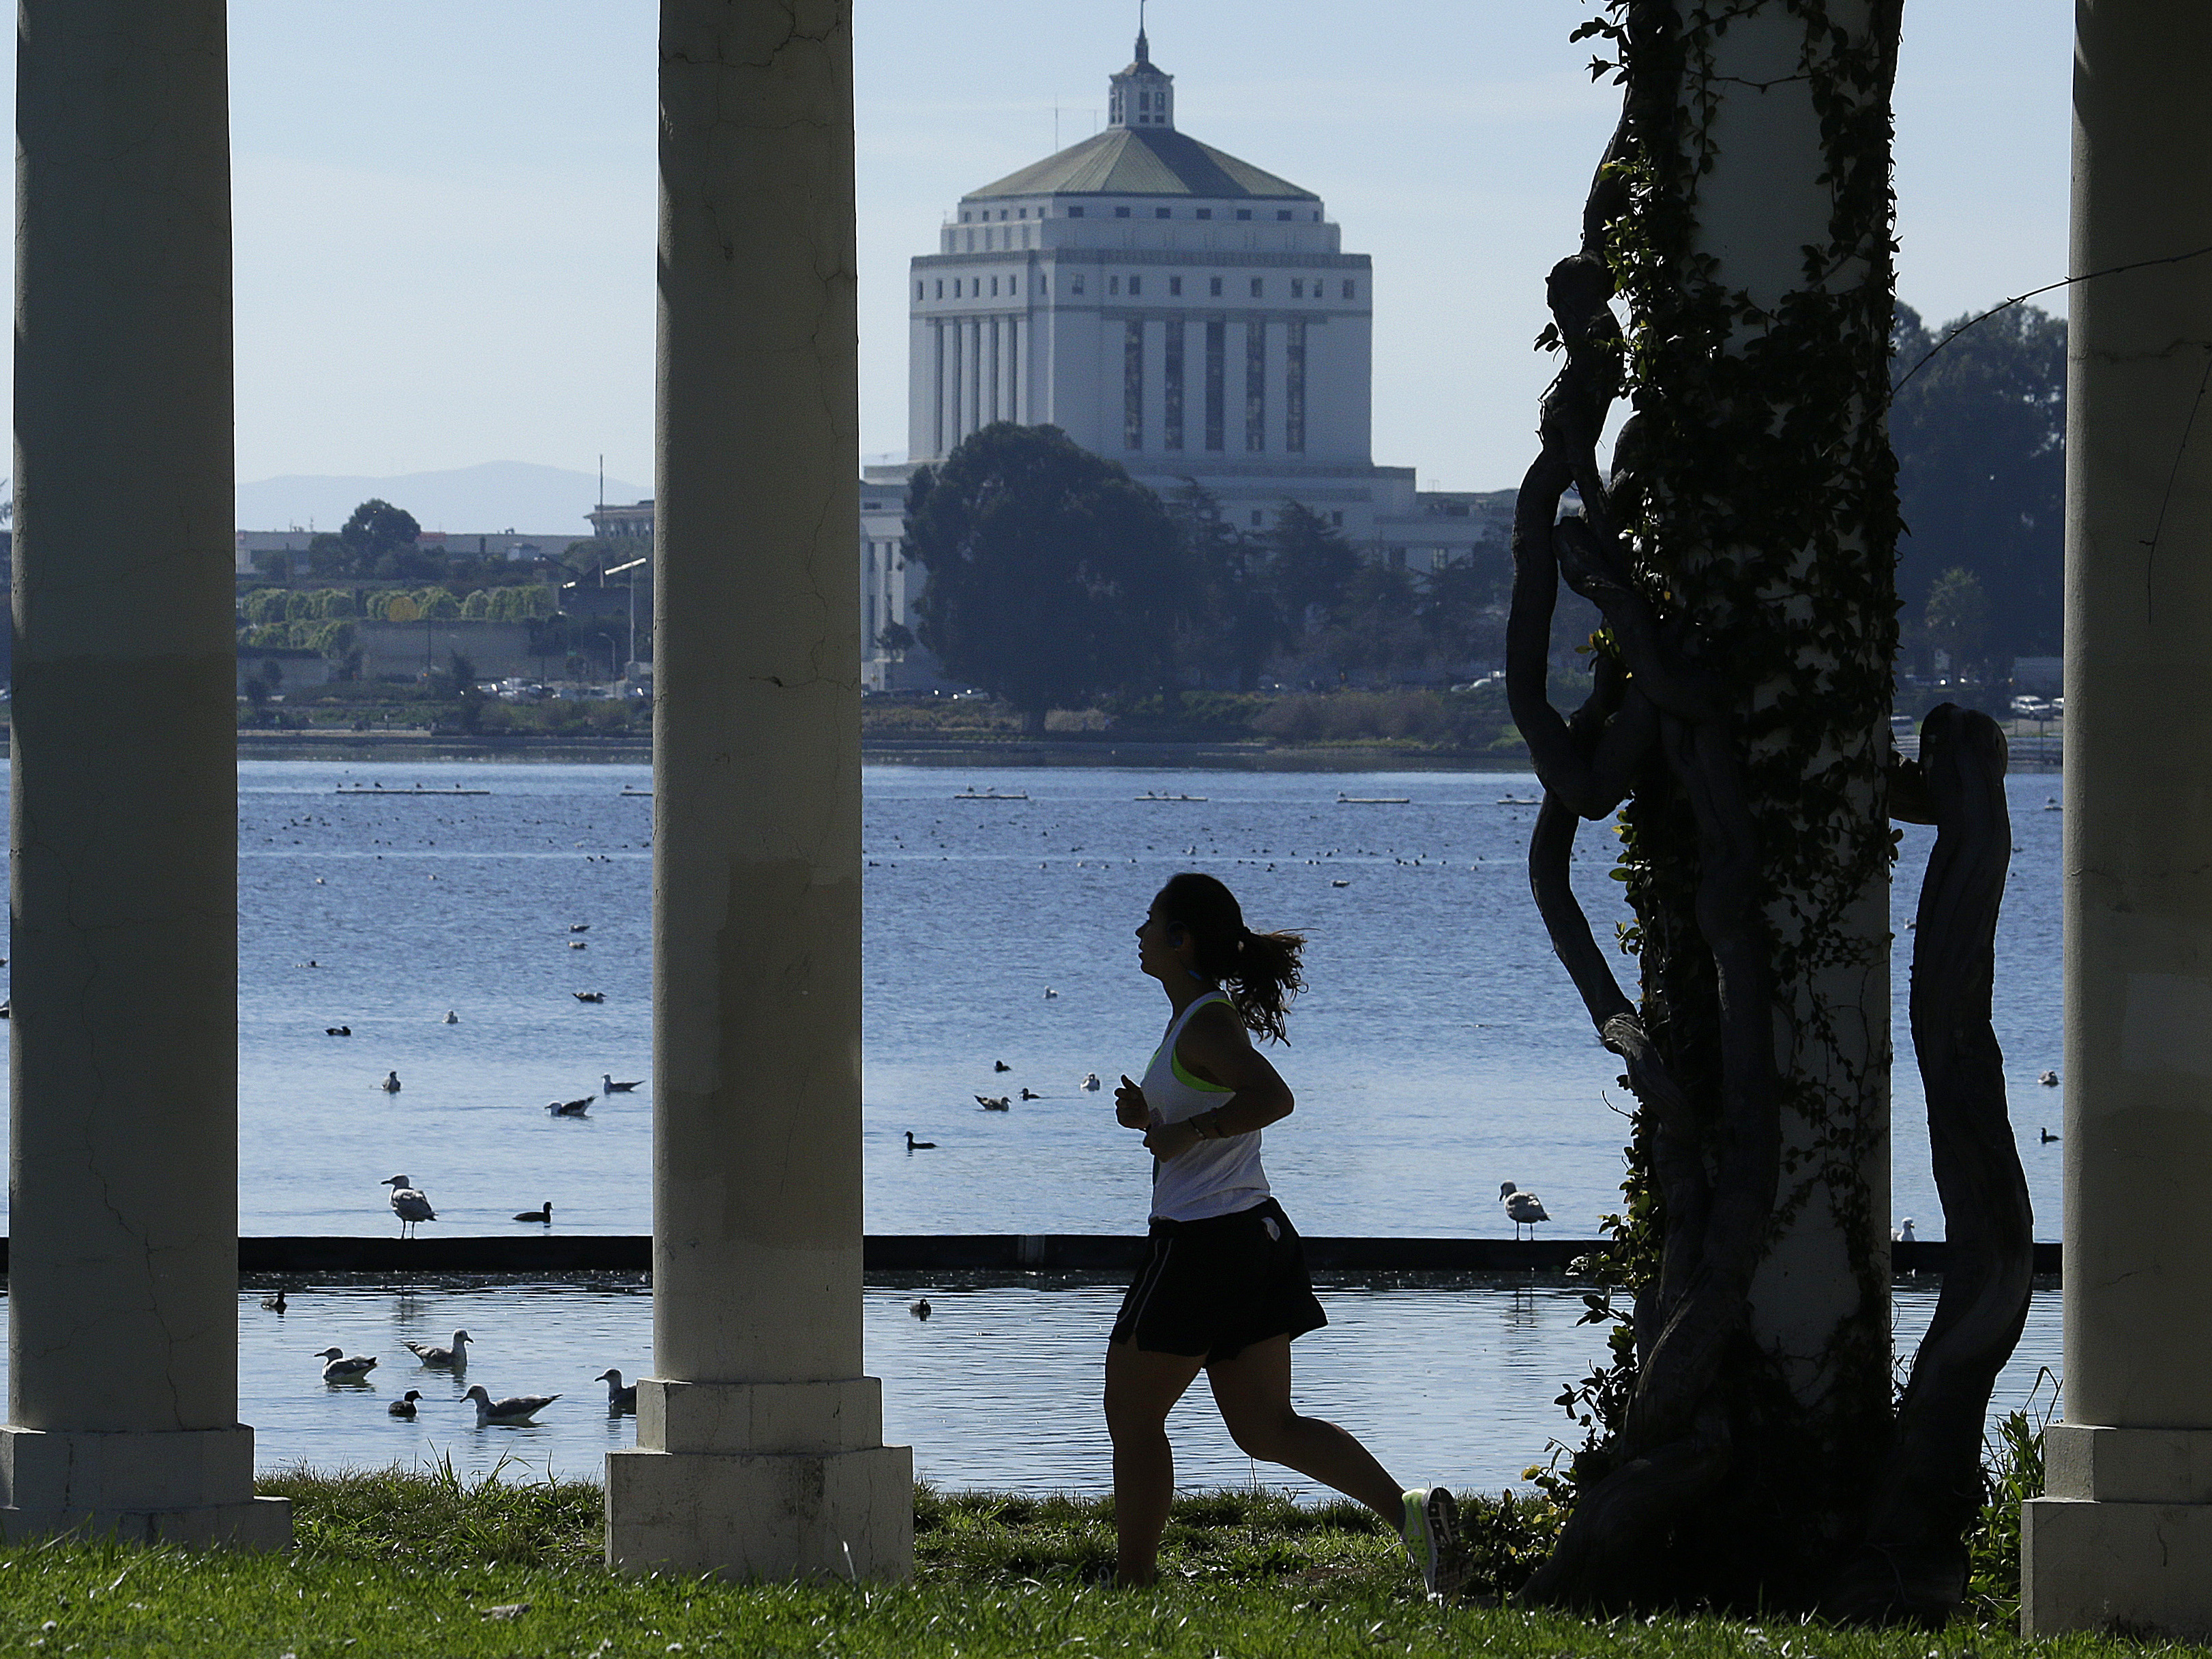 Richest live longer but gap not as dismal in some USA cities